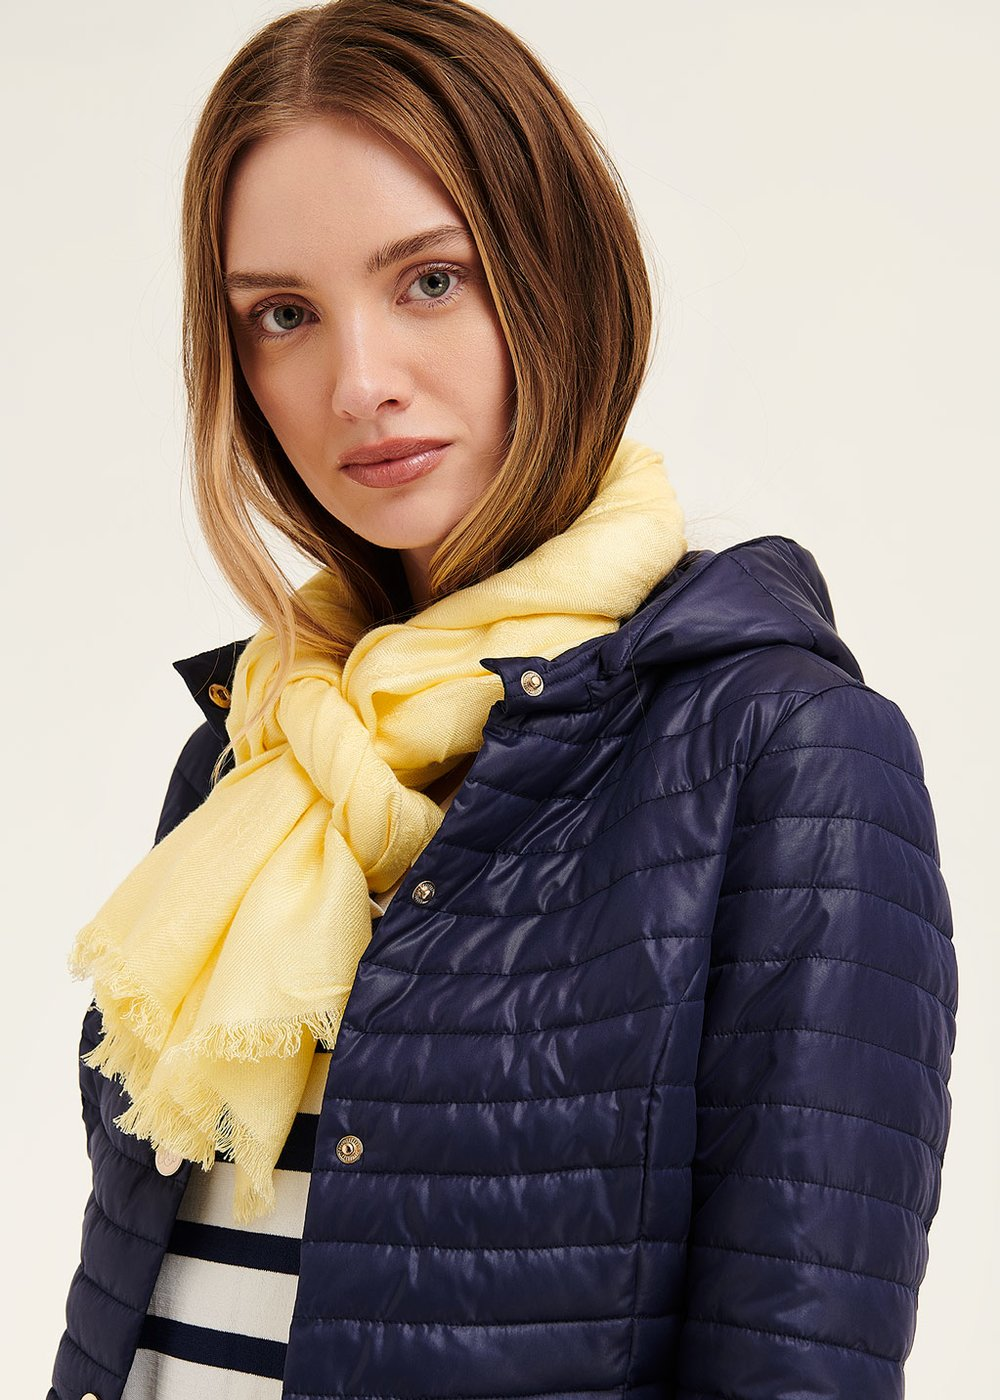 Shan basic scarf with logo - Limone - Woman